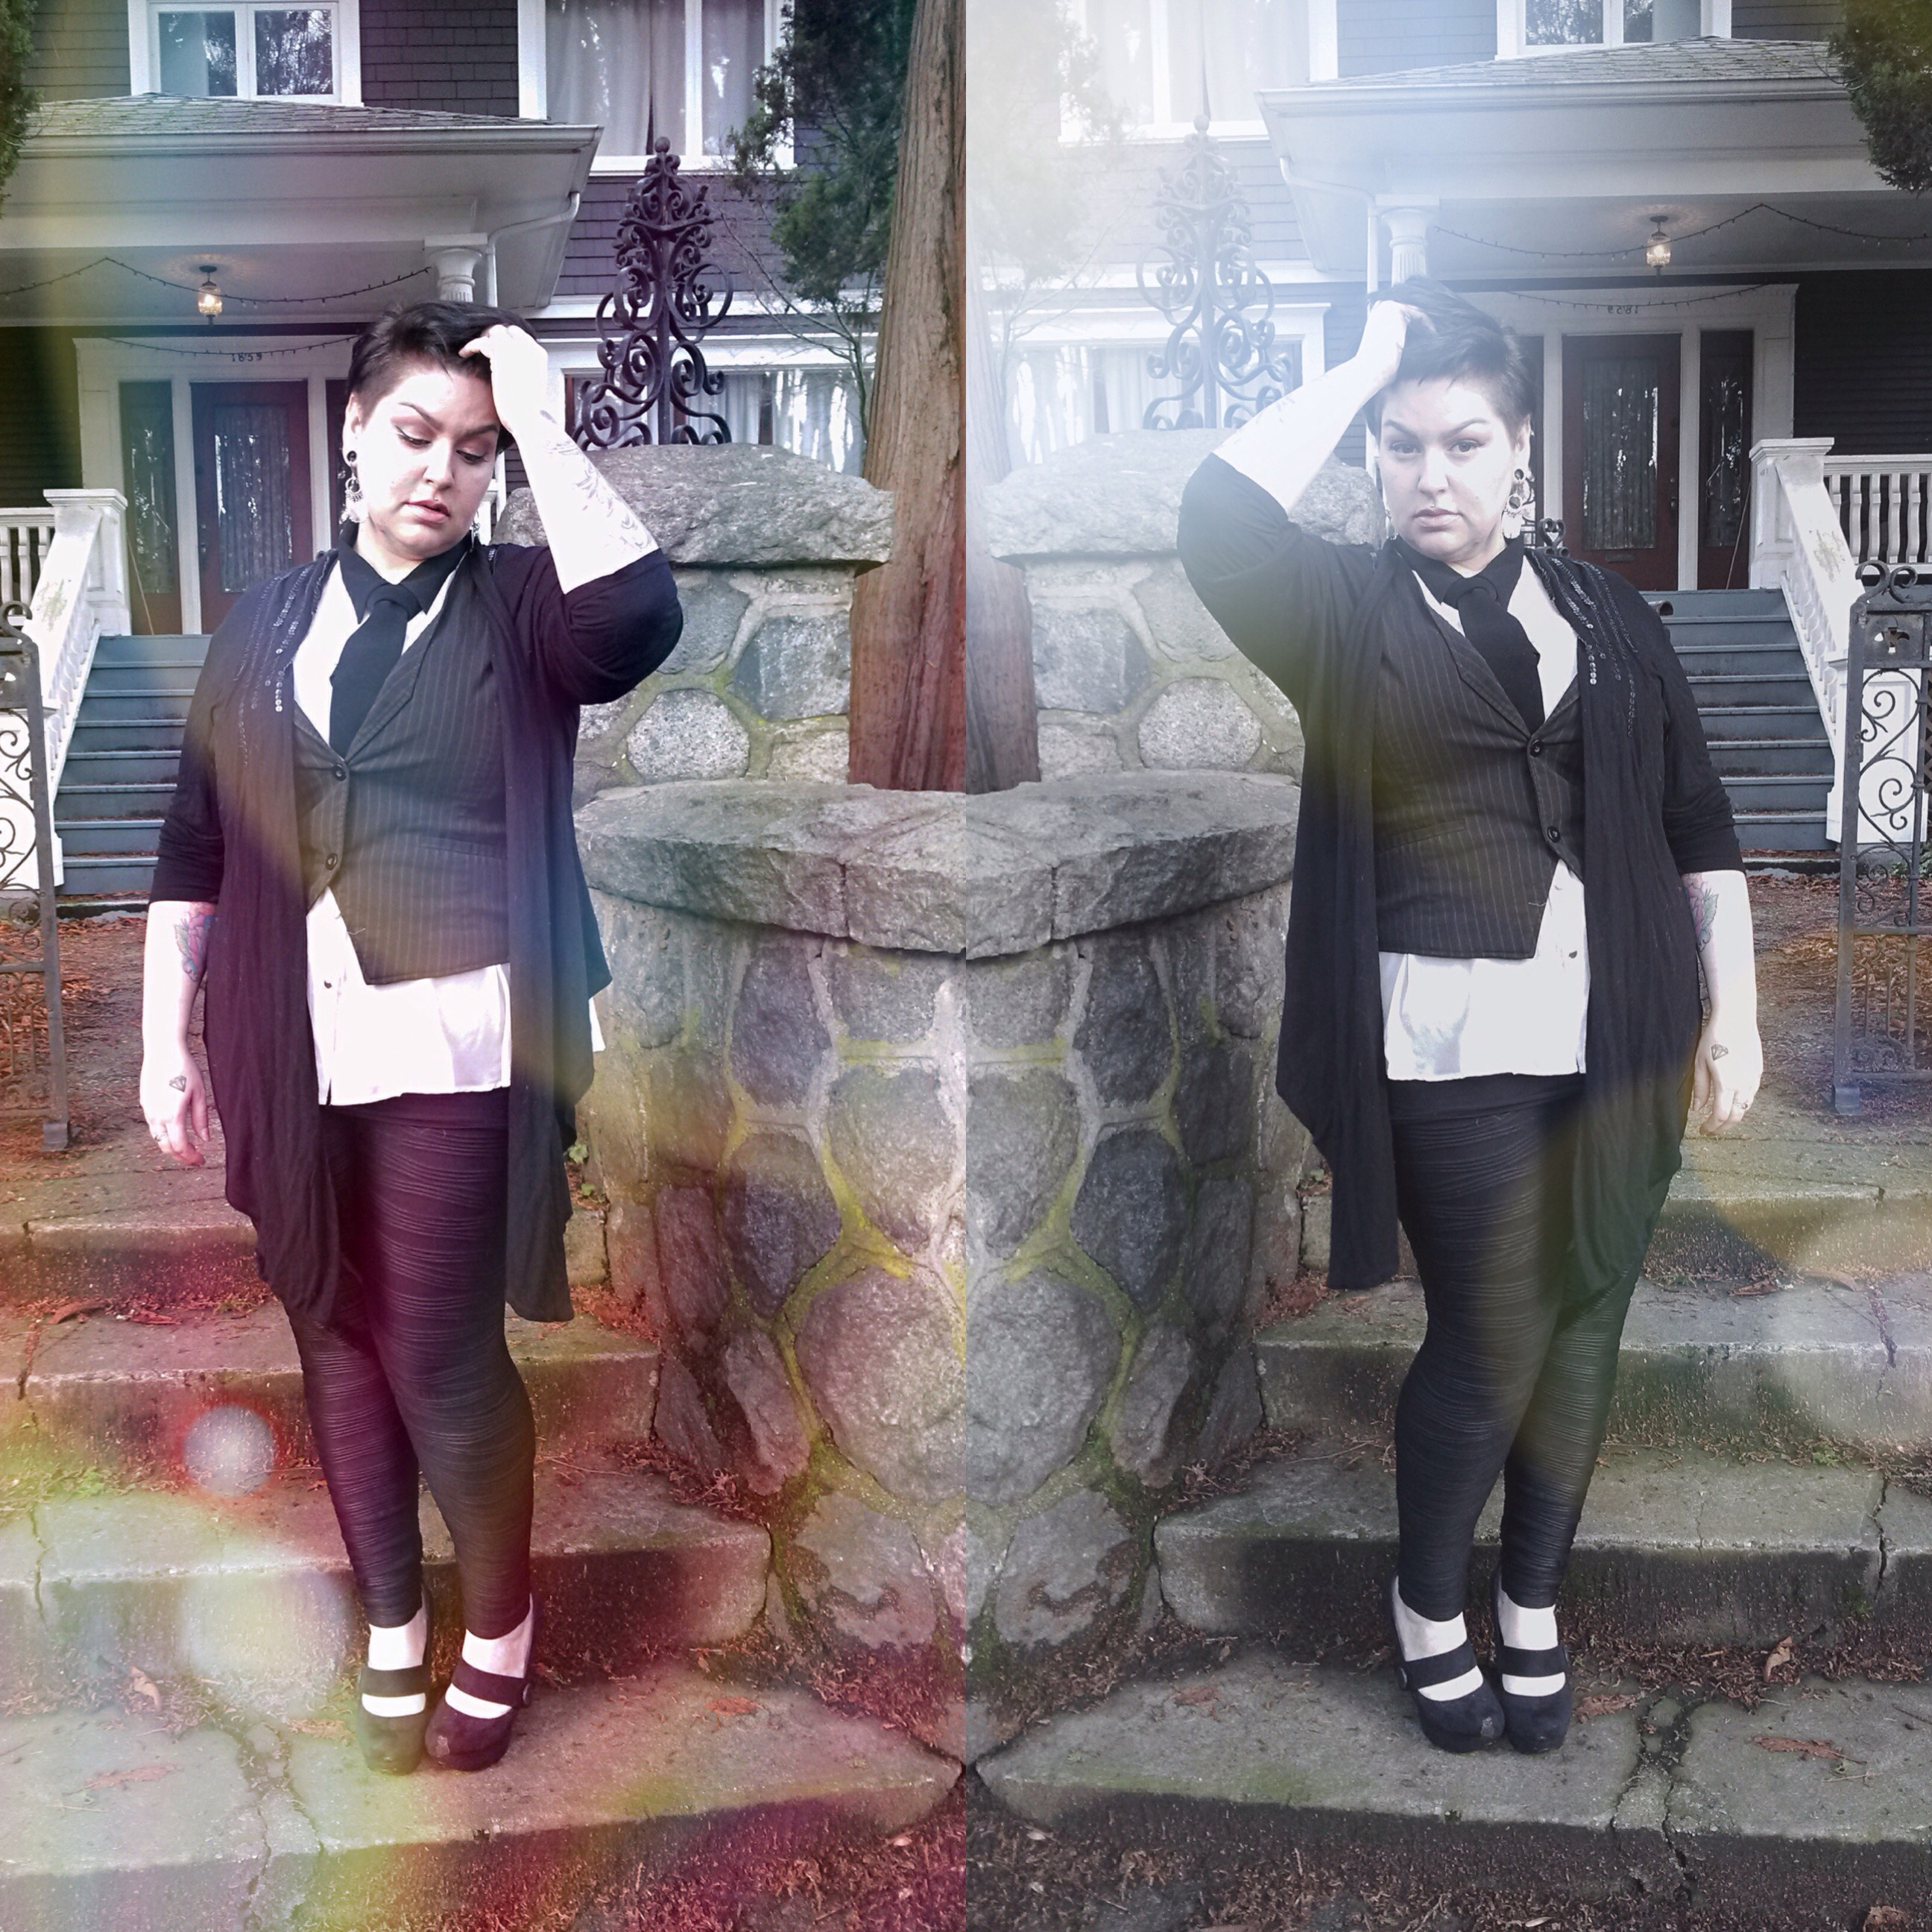 monochrome & lens flare // margot meanie